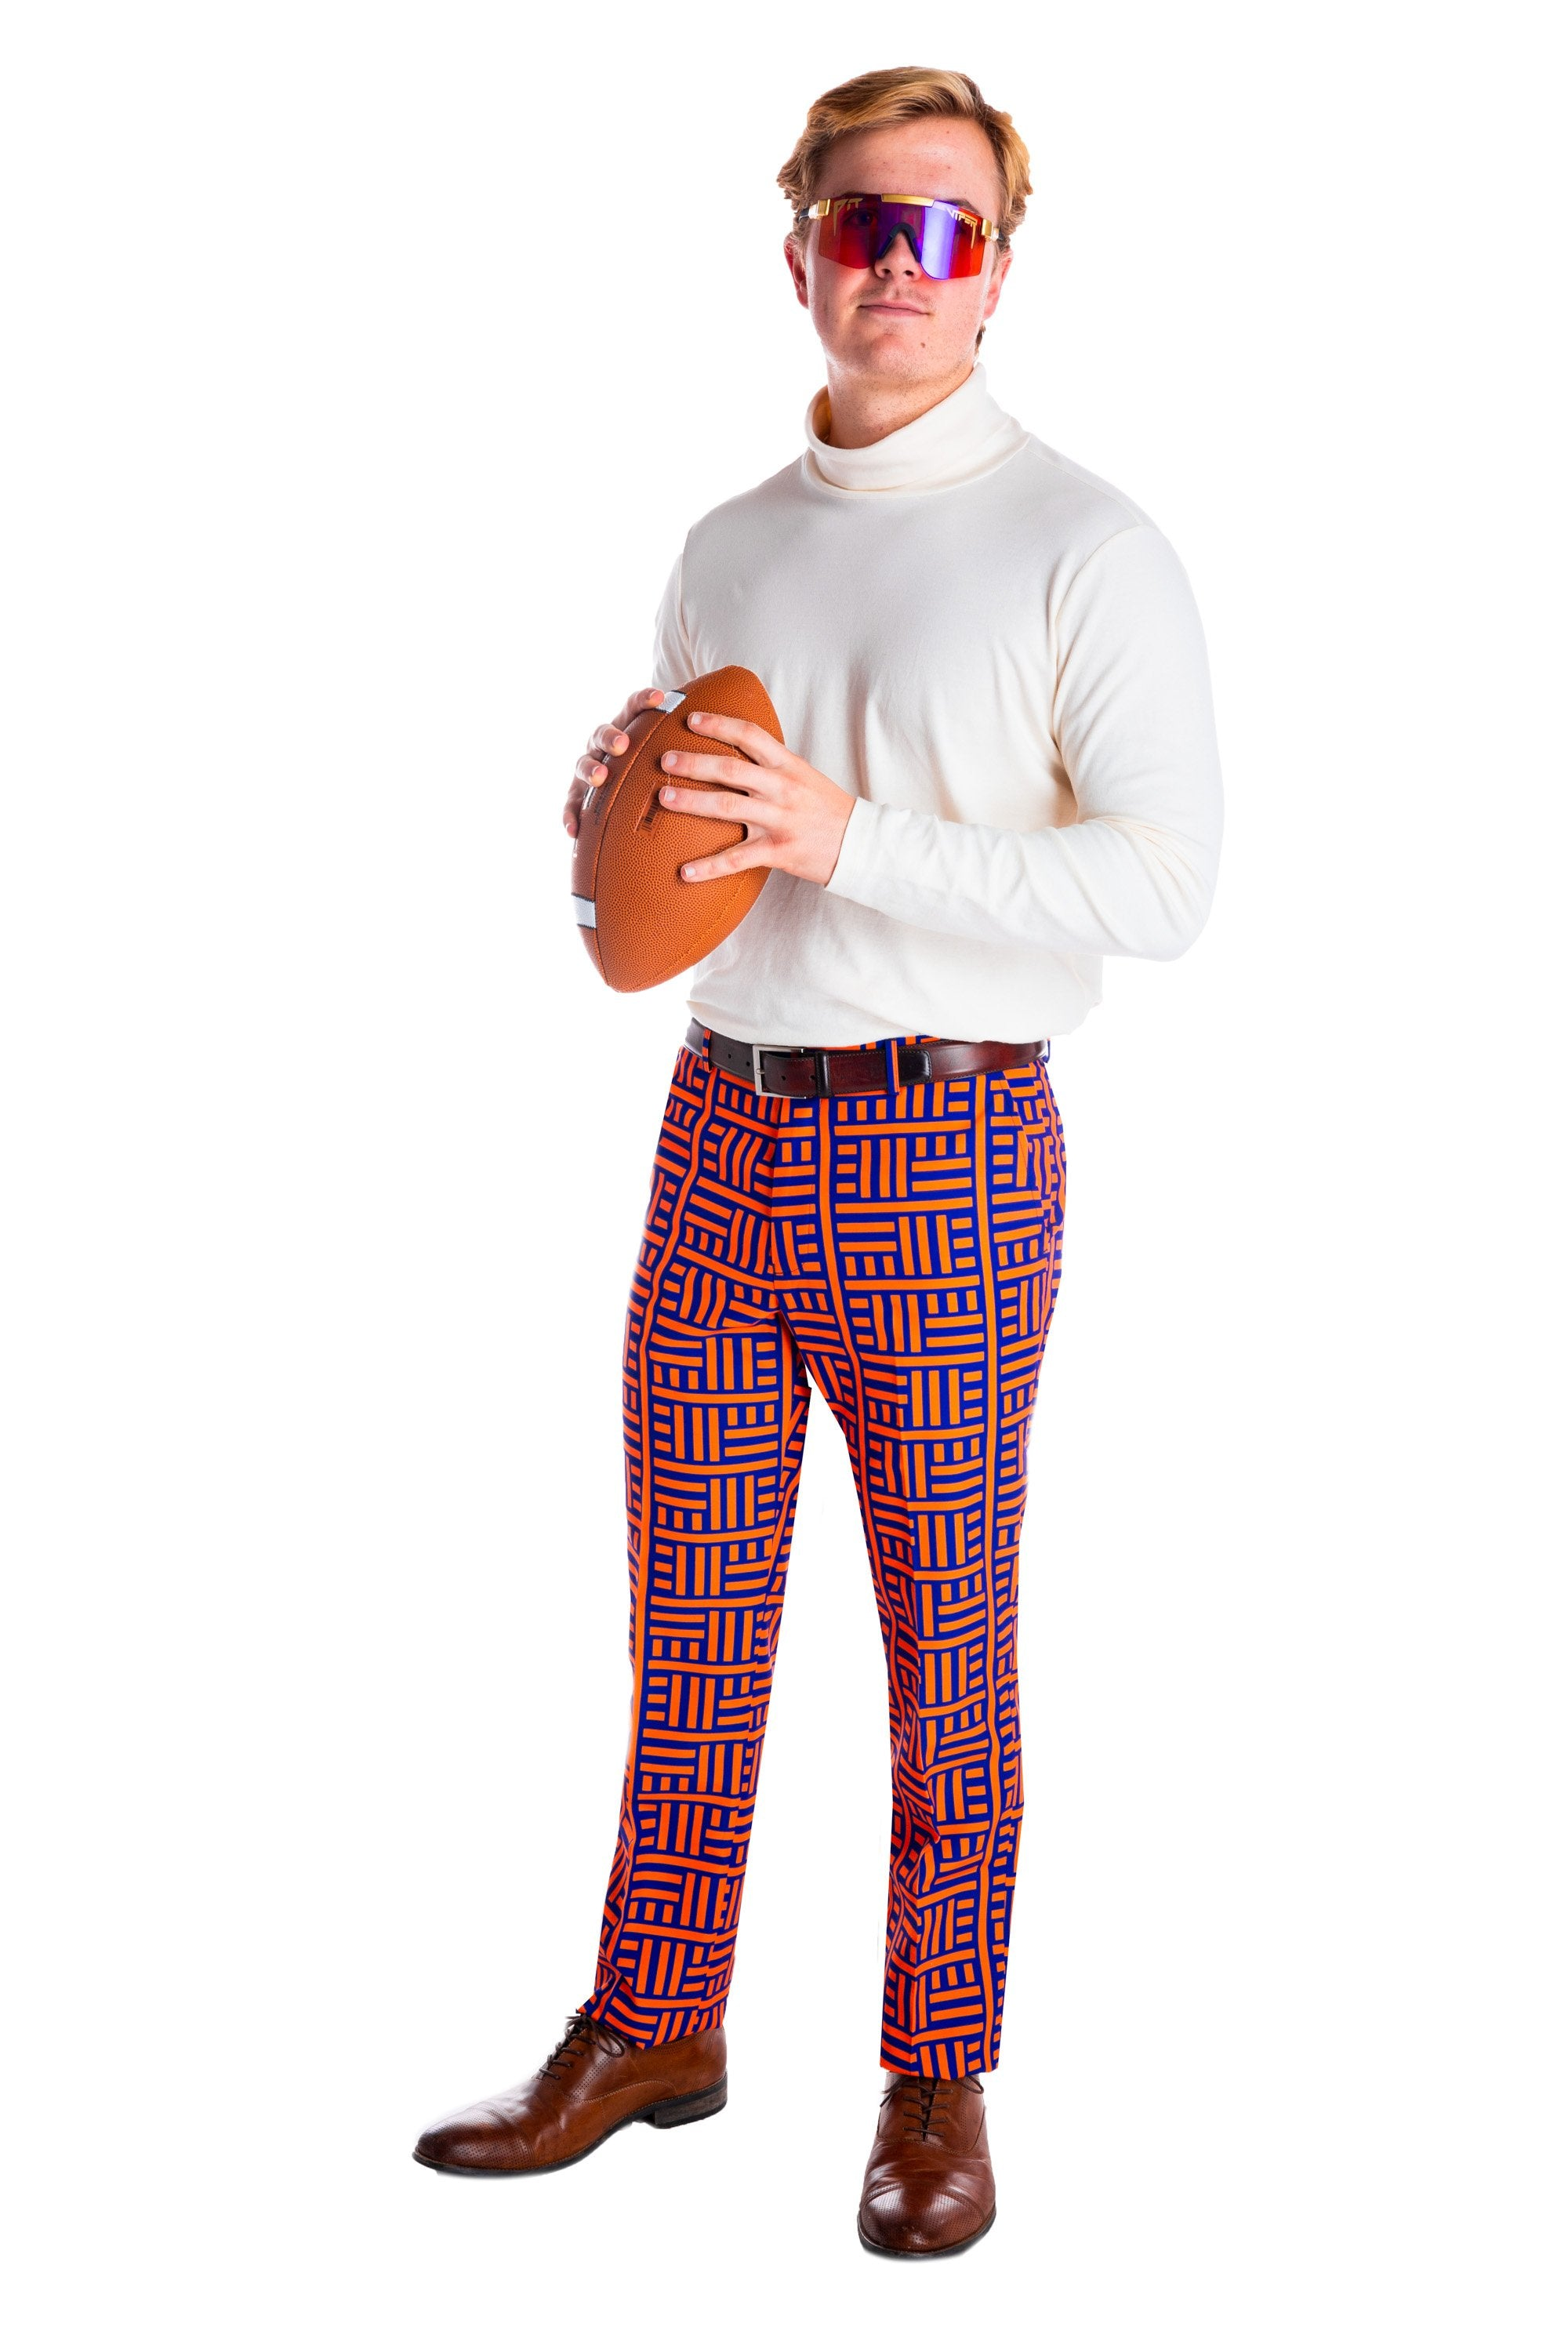 Maze print football dress pants for guys